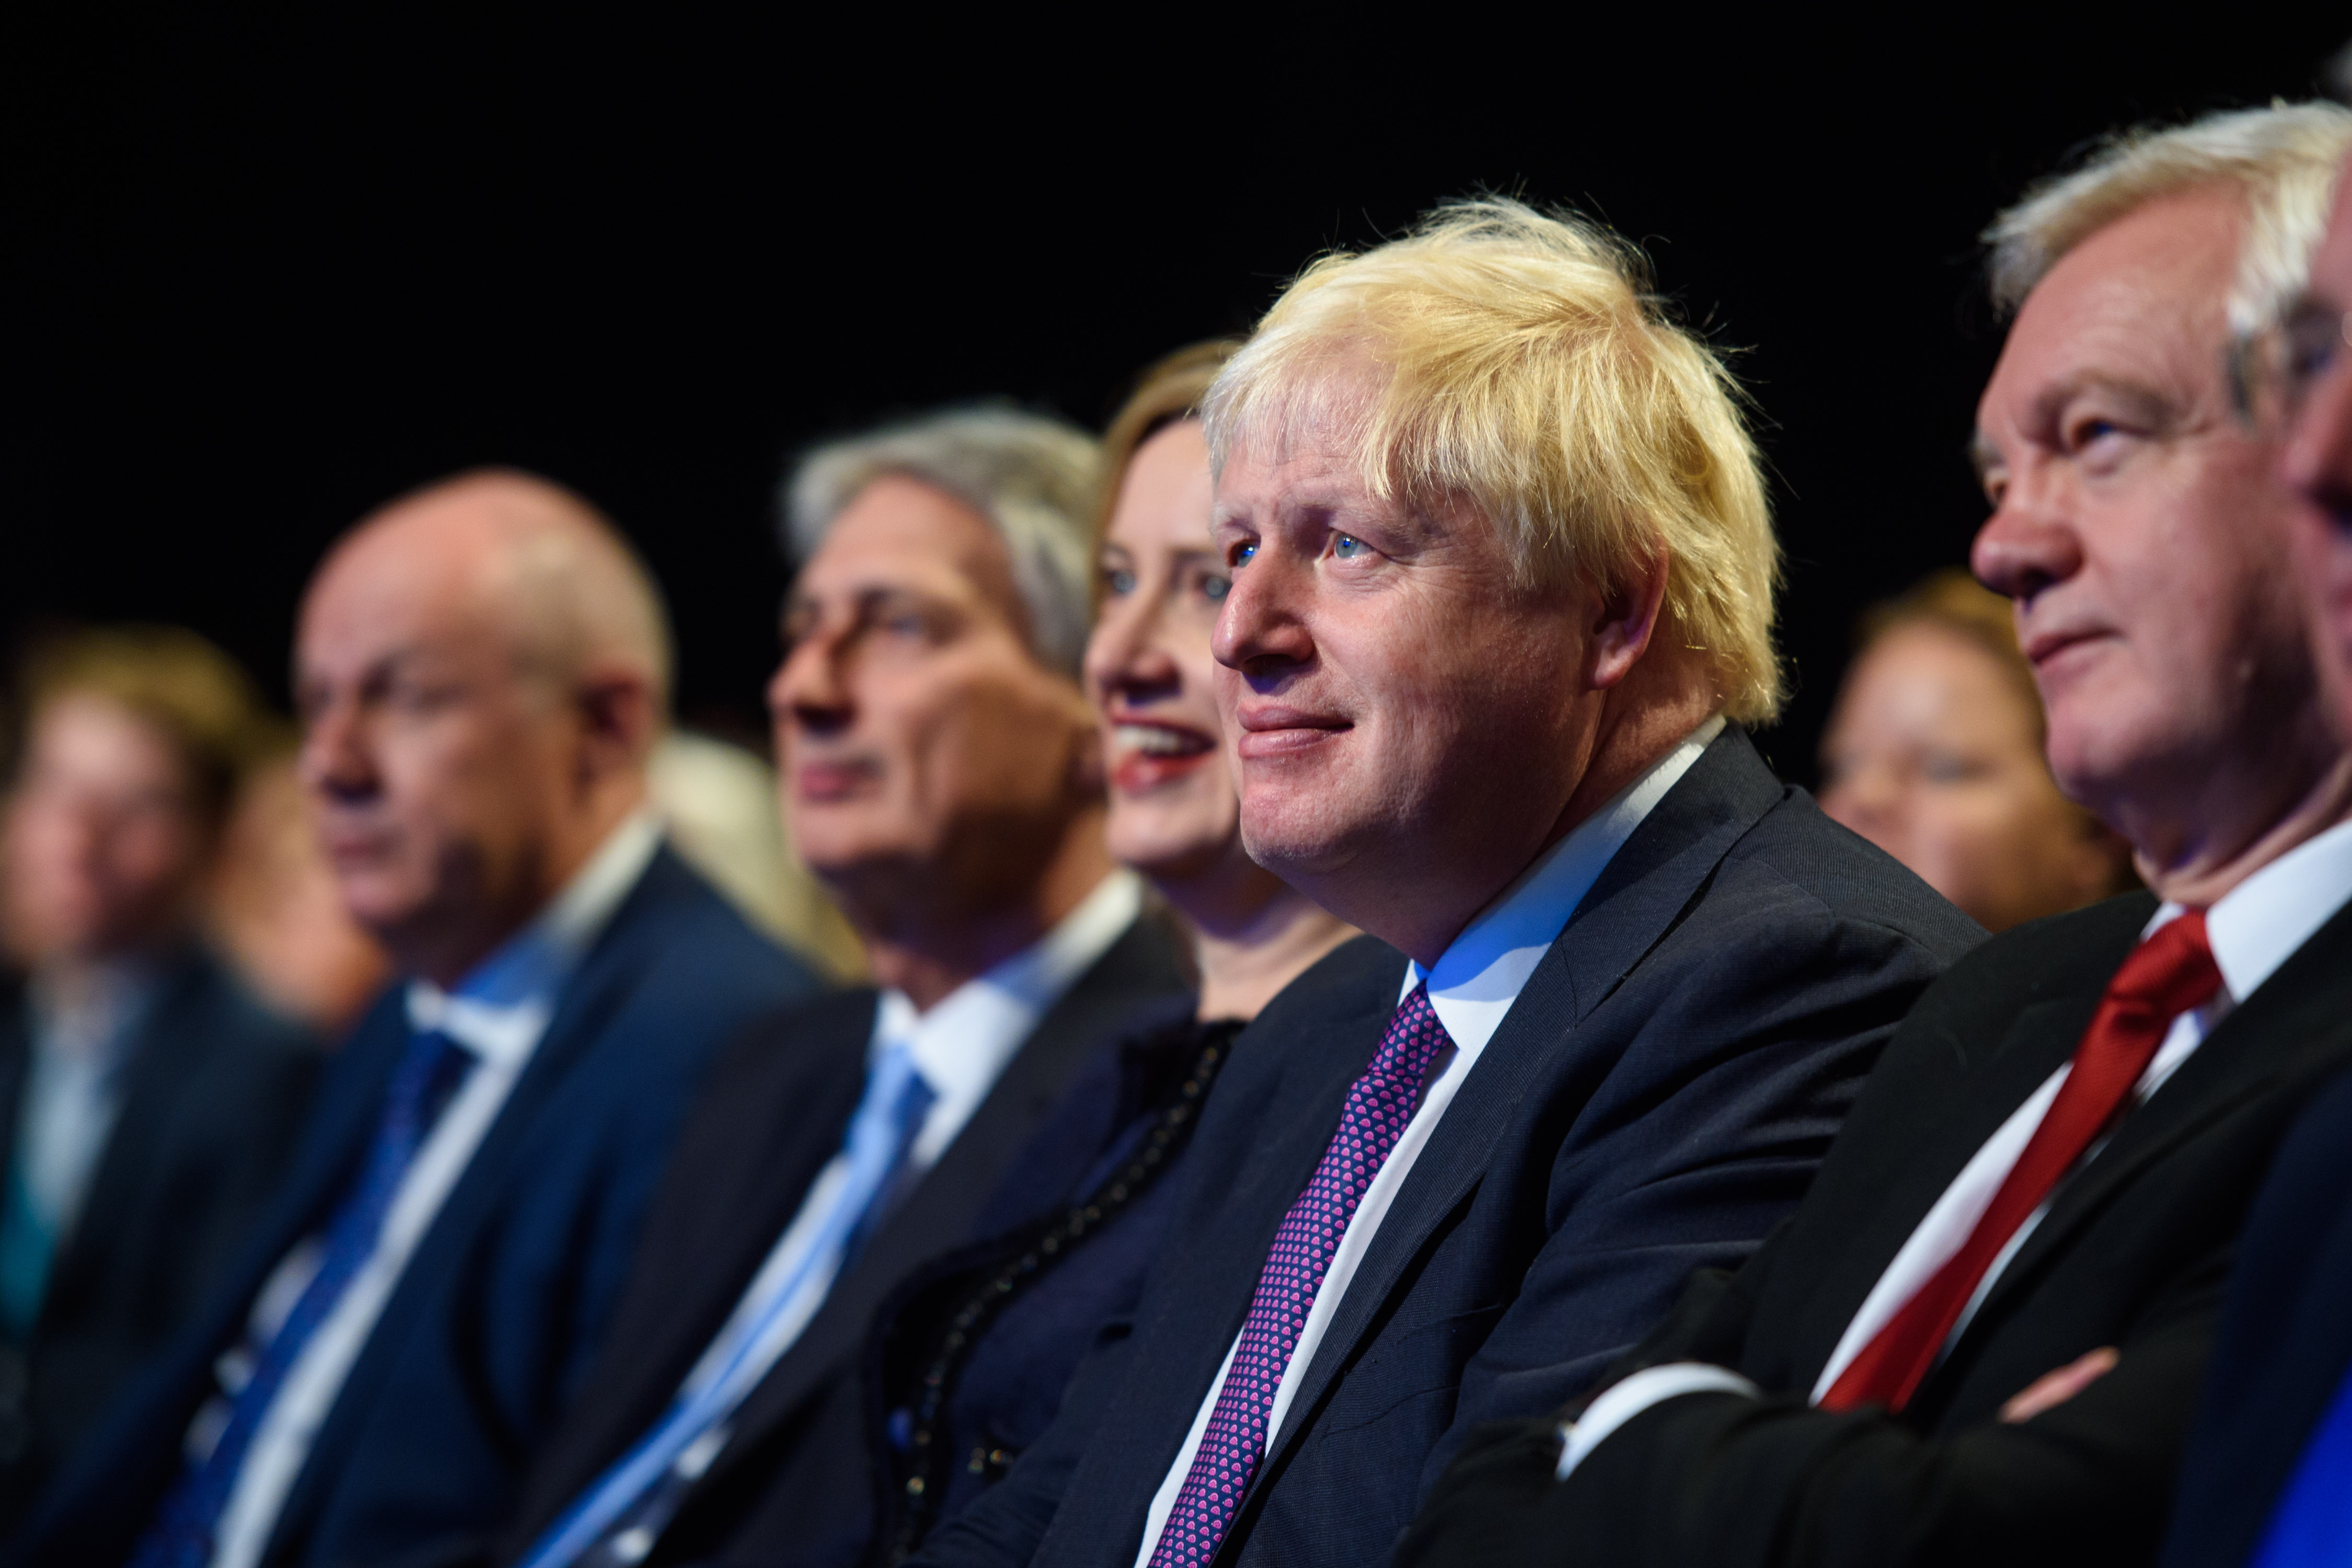 Foreign Minister Boris Johnson watches as Prime Minister Theresa May speaks at the Conservative Party Conference, at the Manchester Central Convention Complex in Manchester. Picture date: 4 October, 2017. Photo credit should read: Matt Crossick/ EMPICS Entertainment.